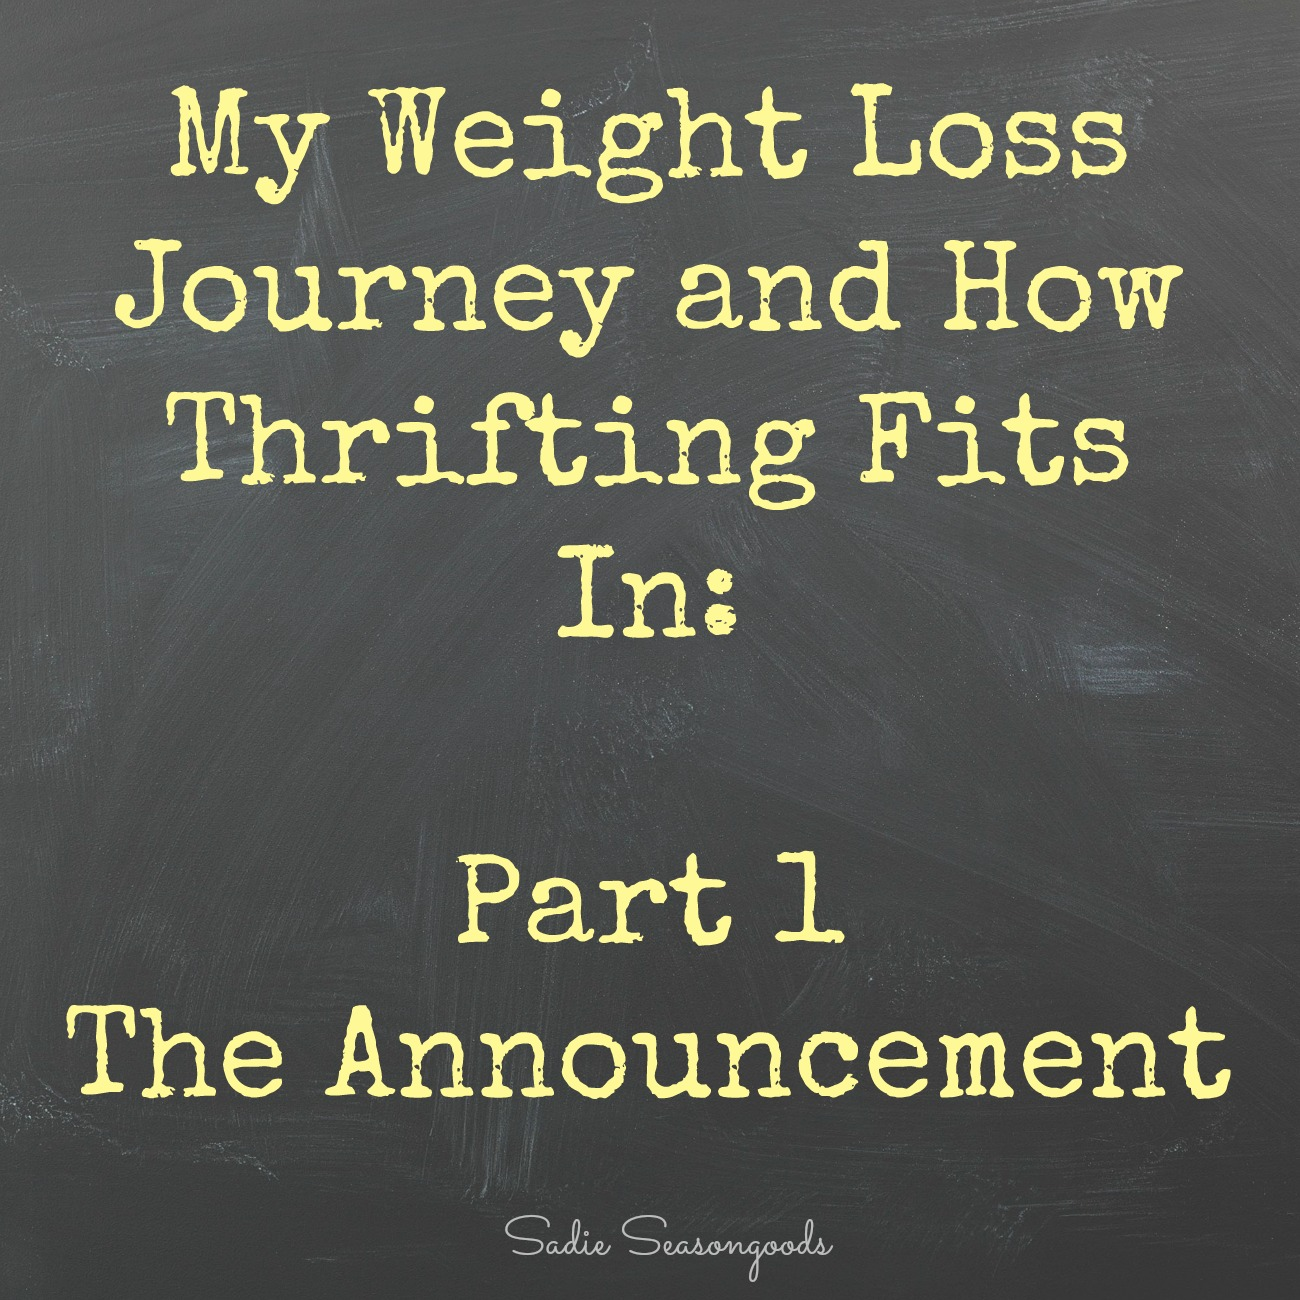 My Weight Loss Journey – The Announcement